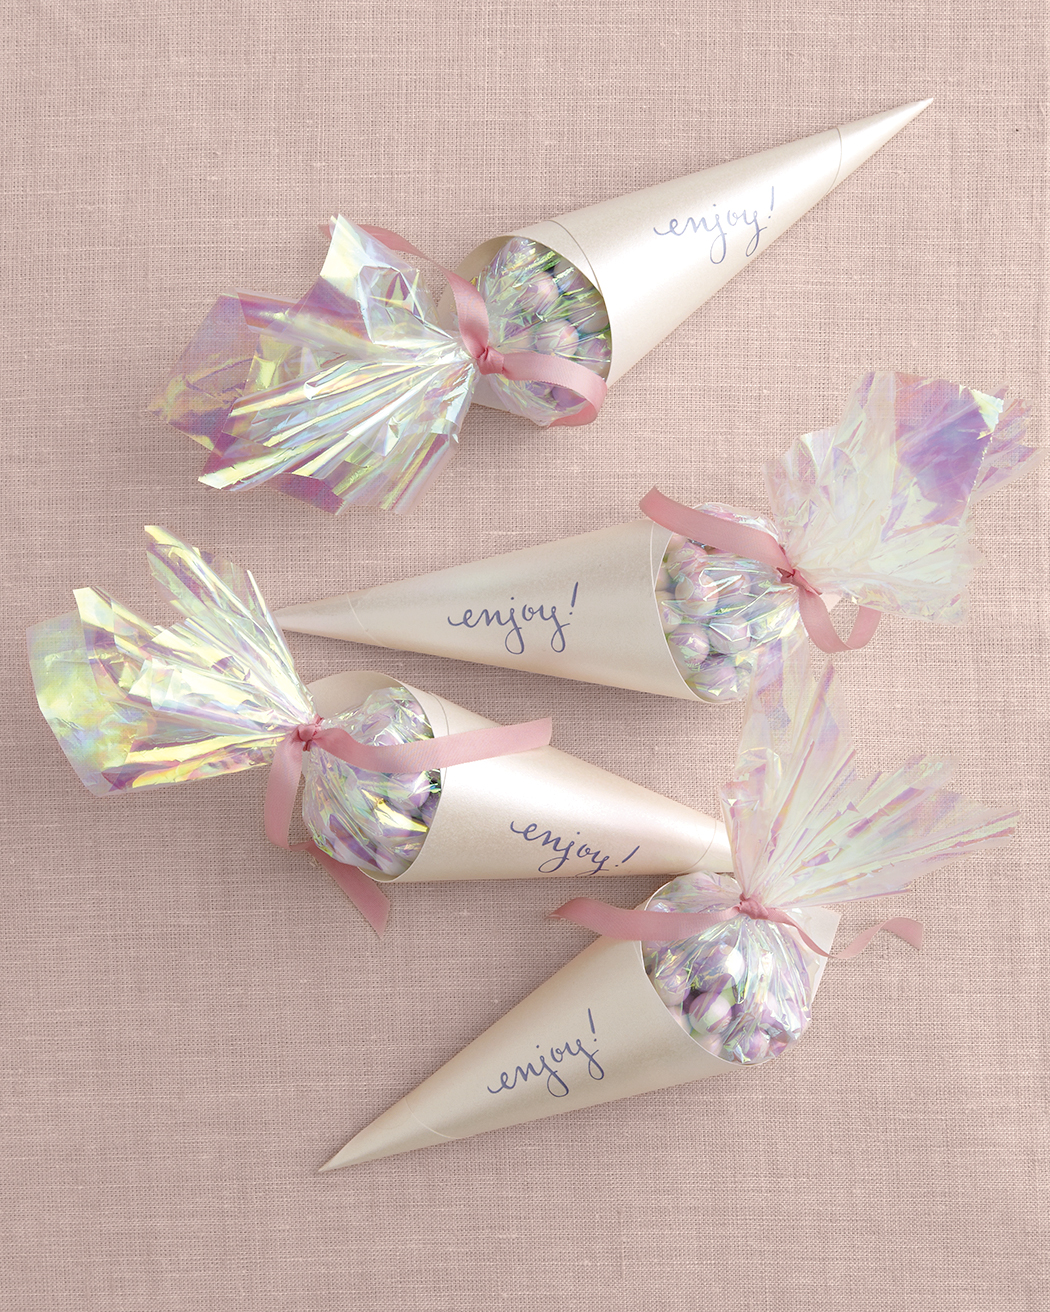 diy-bridal-shower-favors-opal-candy-cones-su10-0515.jpg